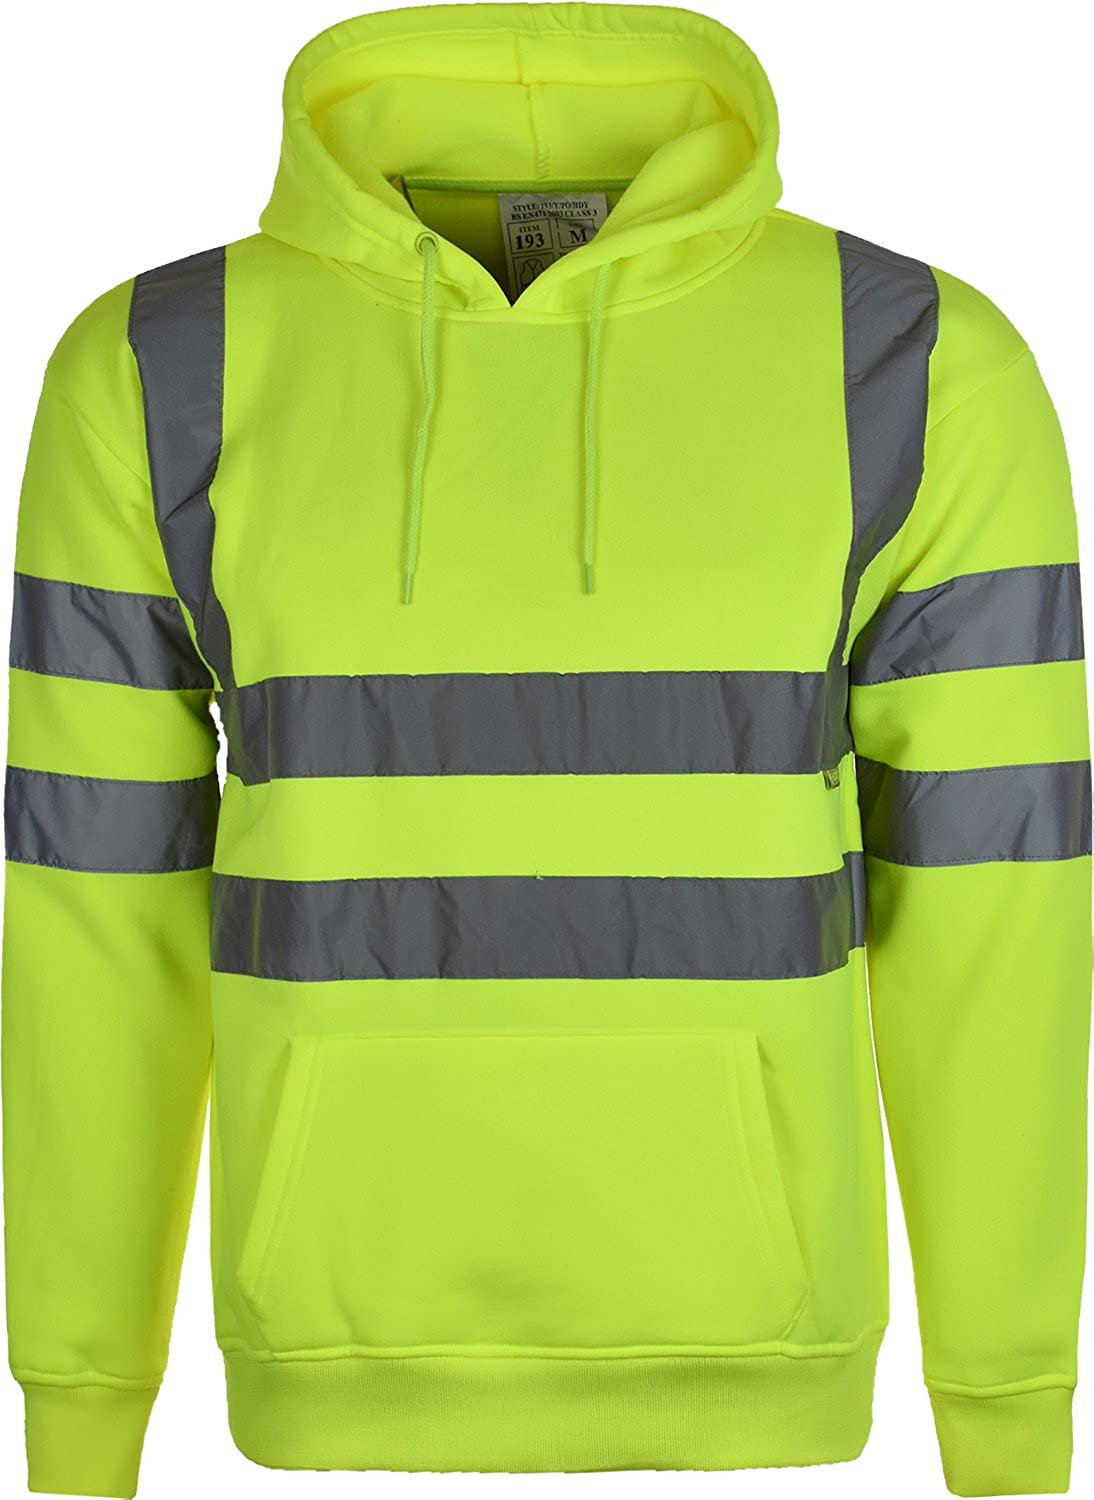 Hi Vis High Visibility Sweatshirt Hooded Jumper Fleece Workwear Hoodie Small to 3XL